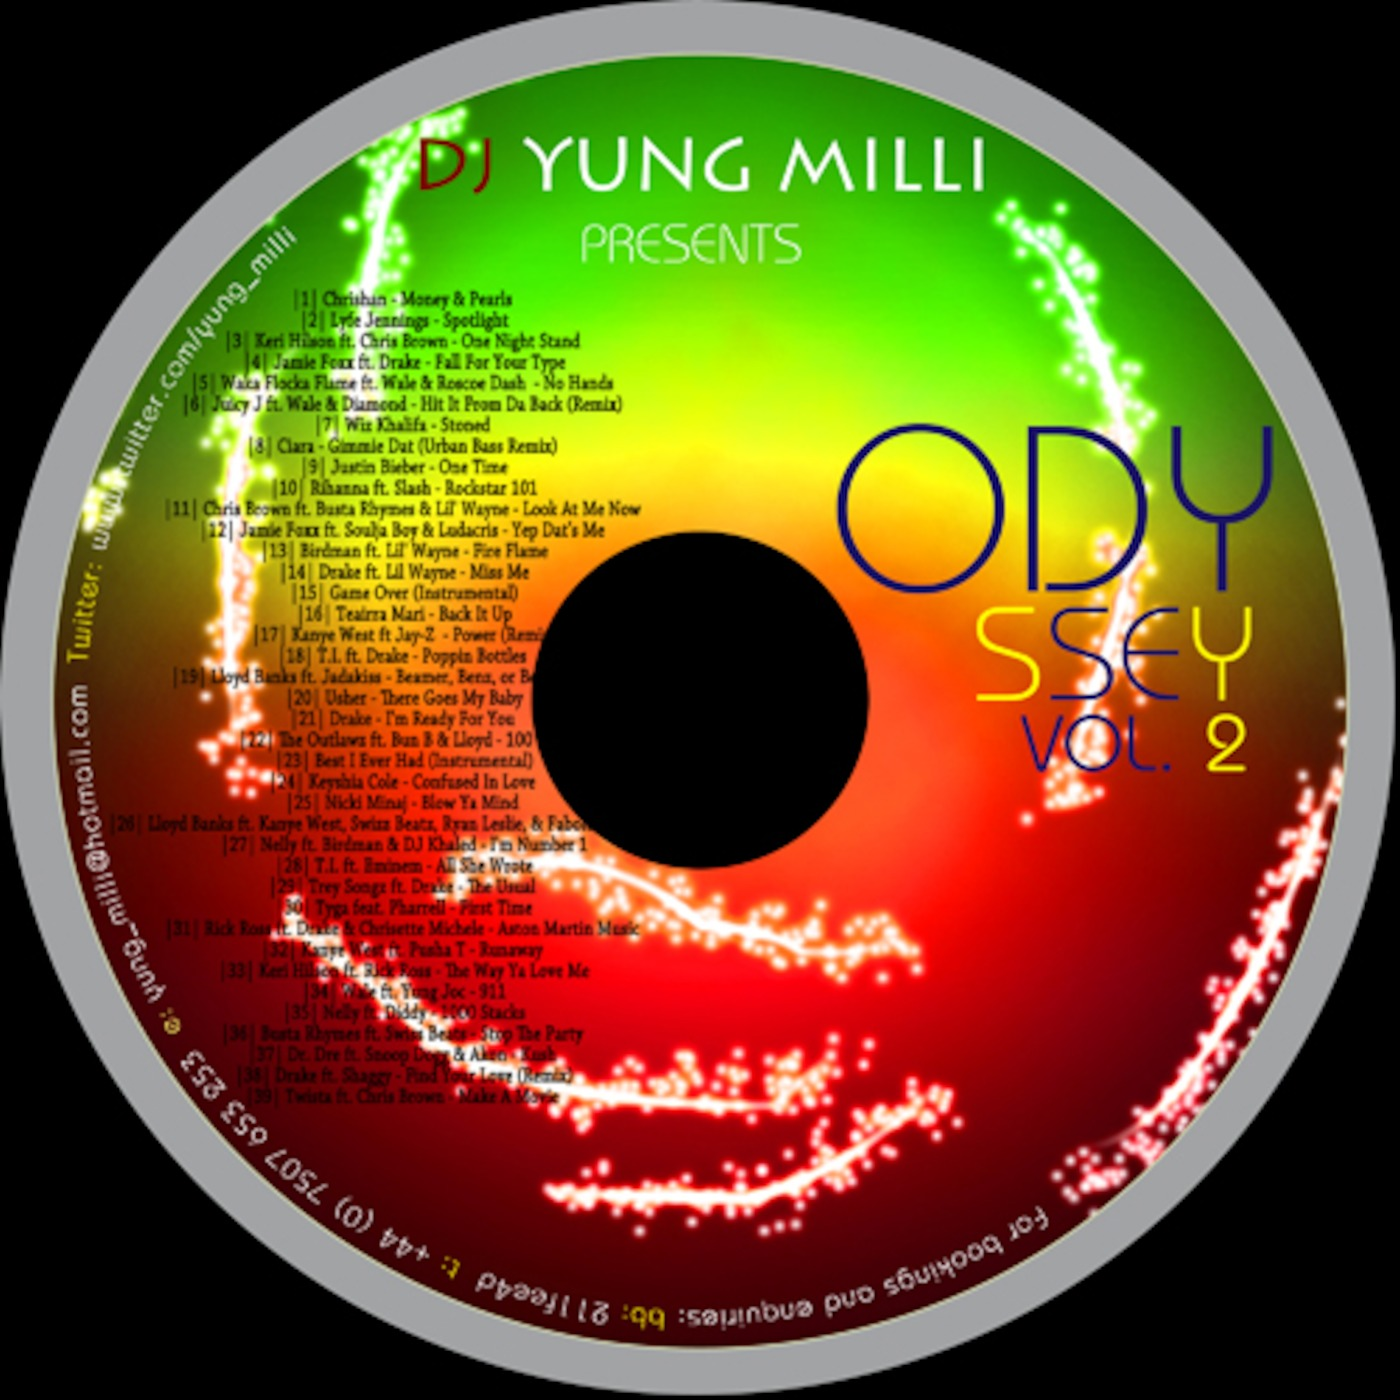 Dj Yung Milli Presents to you a fusion of Hip Hop & RnB Mixtape that is sure to make you do the Lean with it Rock with it LOL ODYSSEY VOL 2